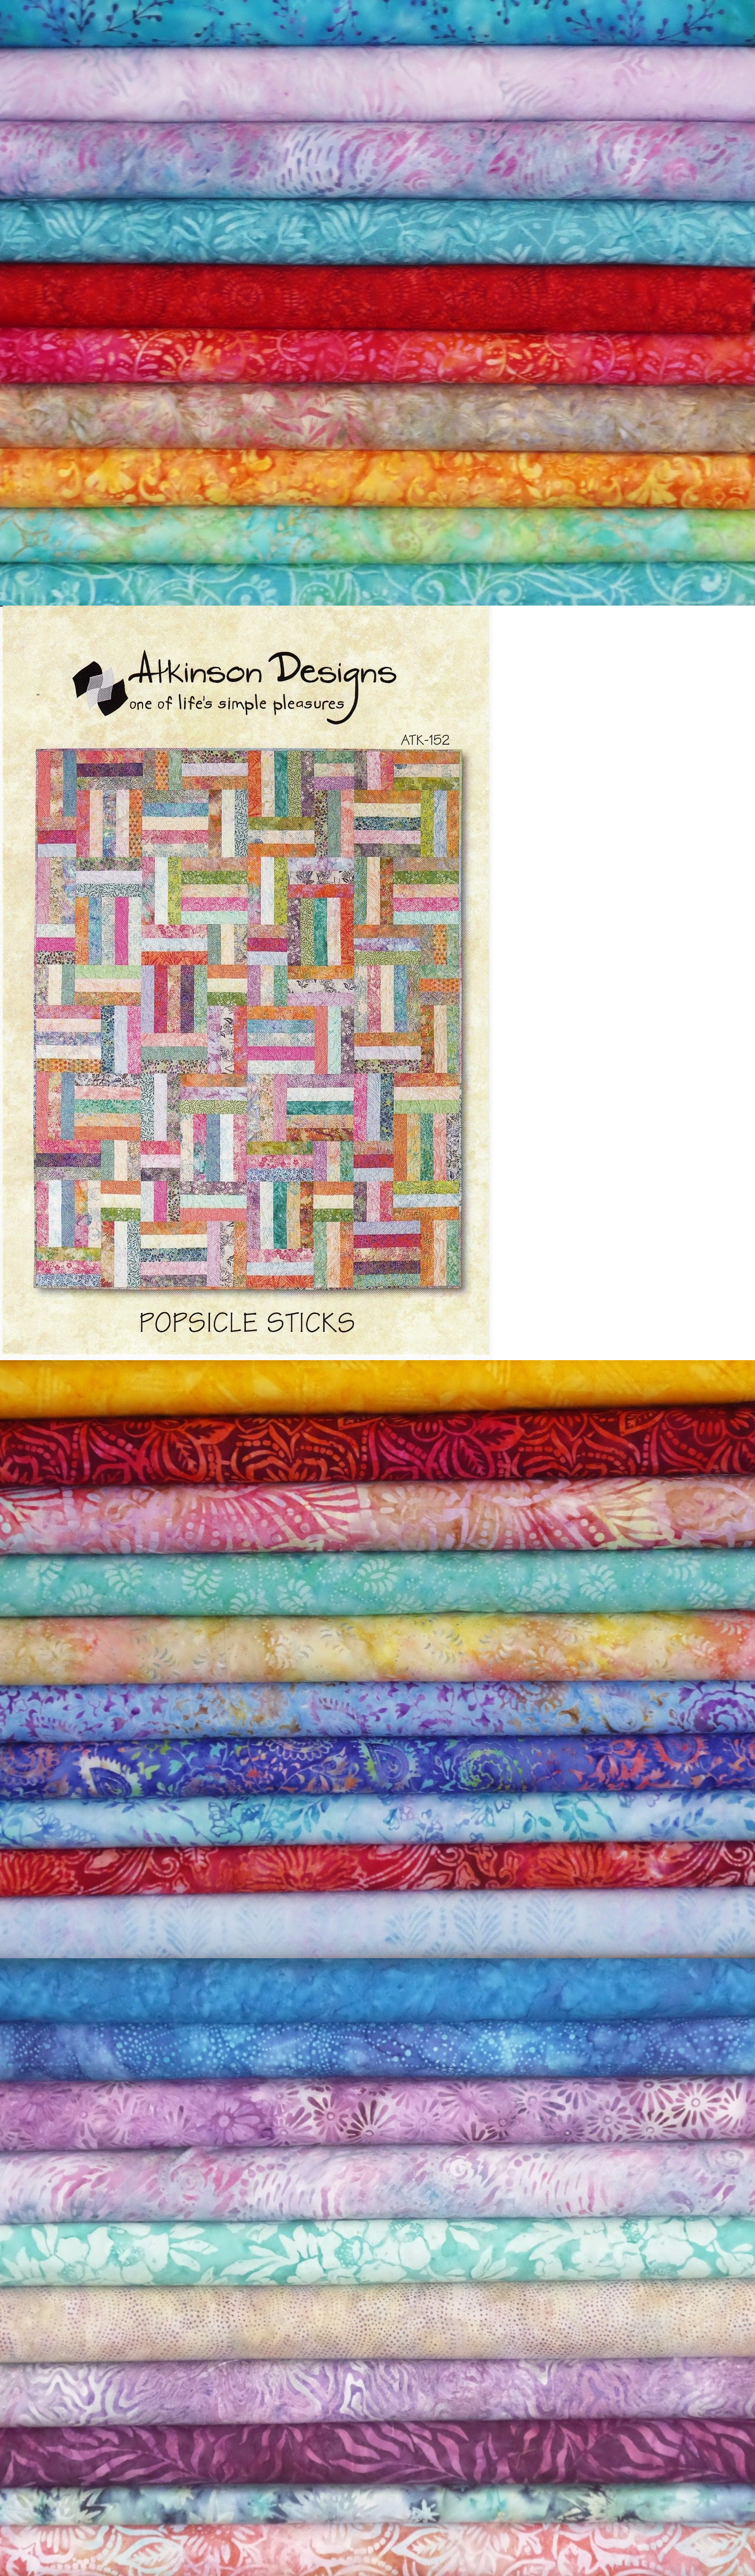 Quilting Kits 19160 Popsicle Sticks Quilt Kit With 72 Different